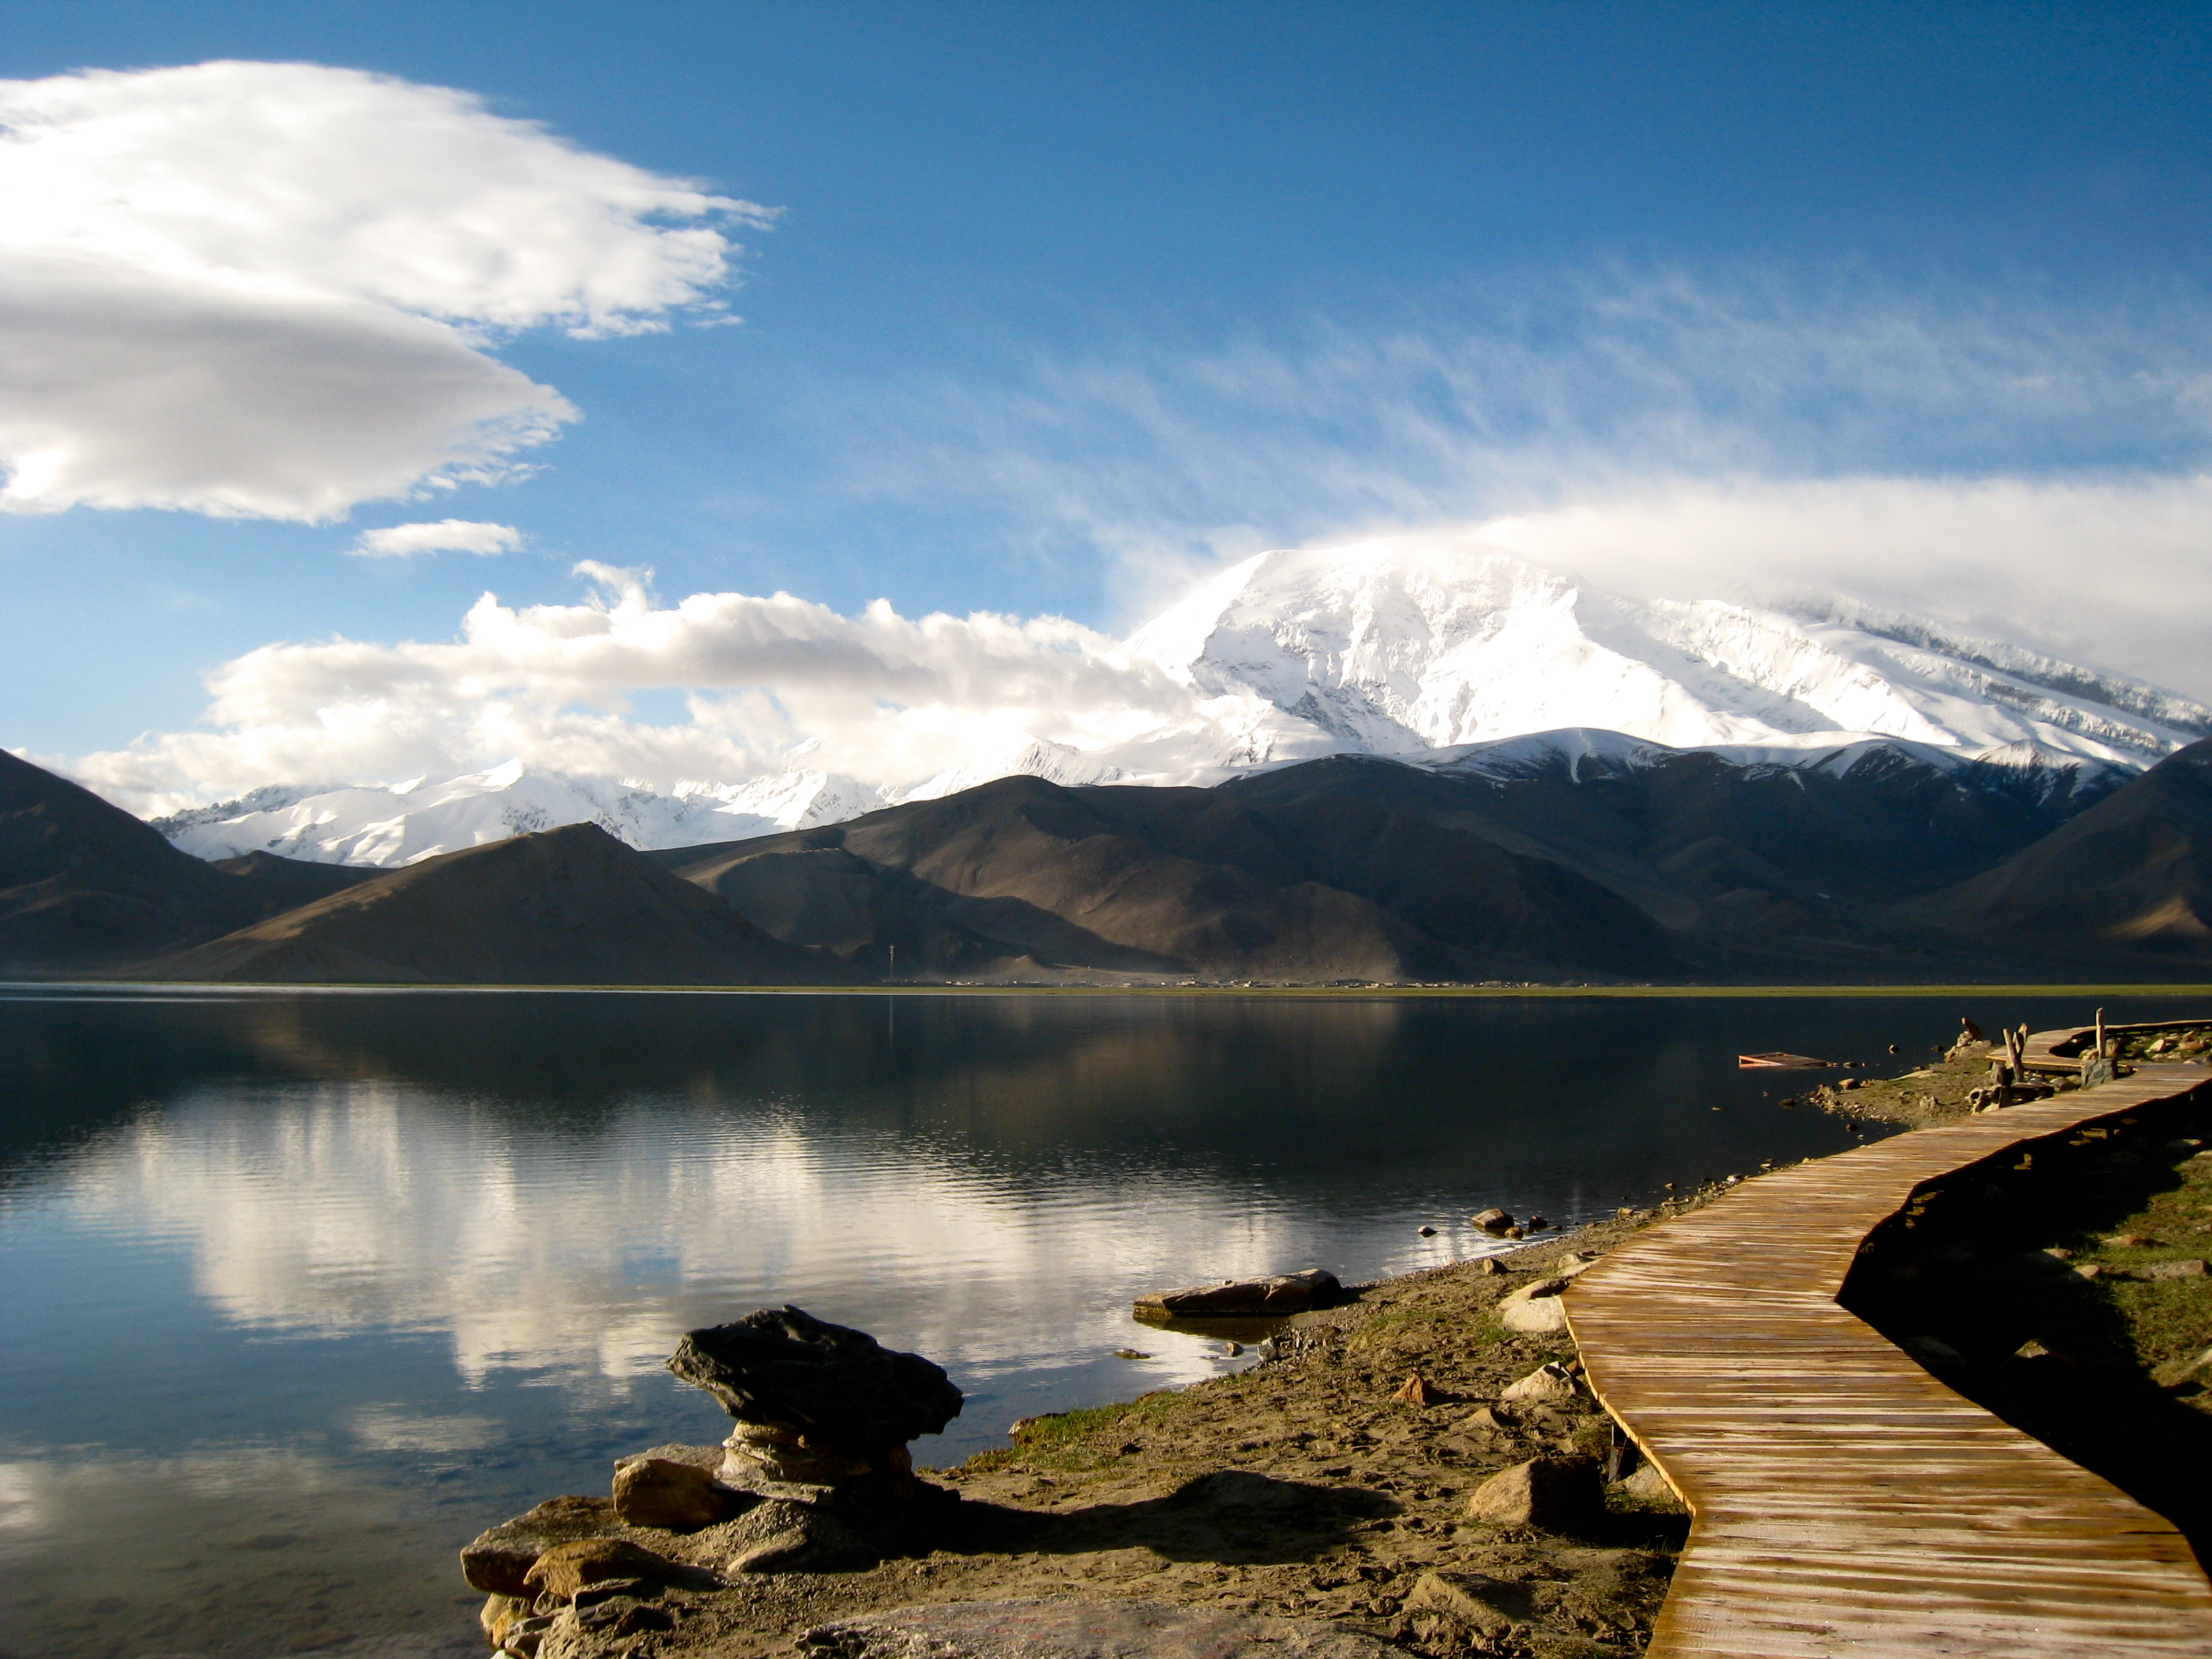 Picture of water, mountains and a wooden walking path